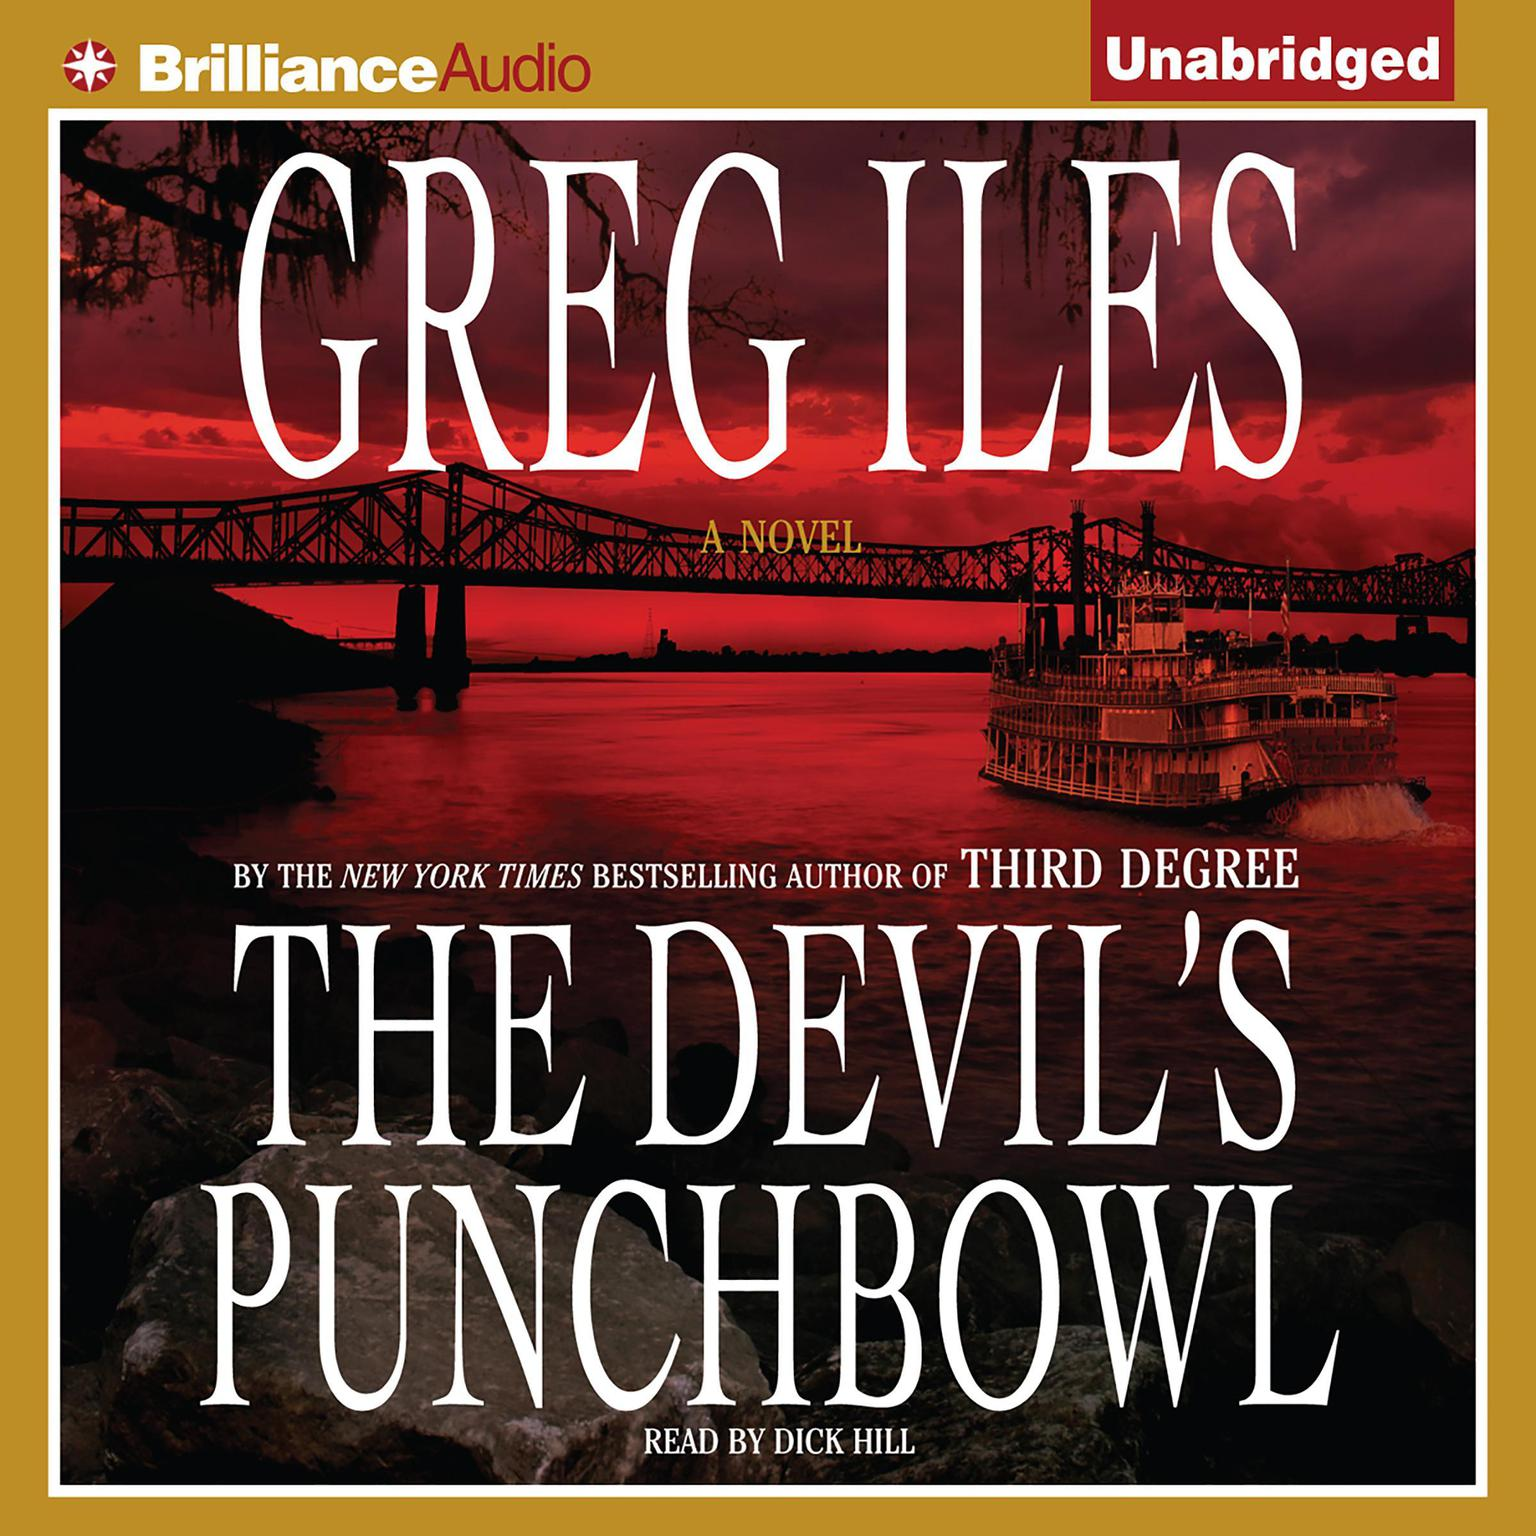 Printable The Devil's Punchbowl Audiobook Cover Art